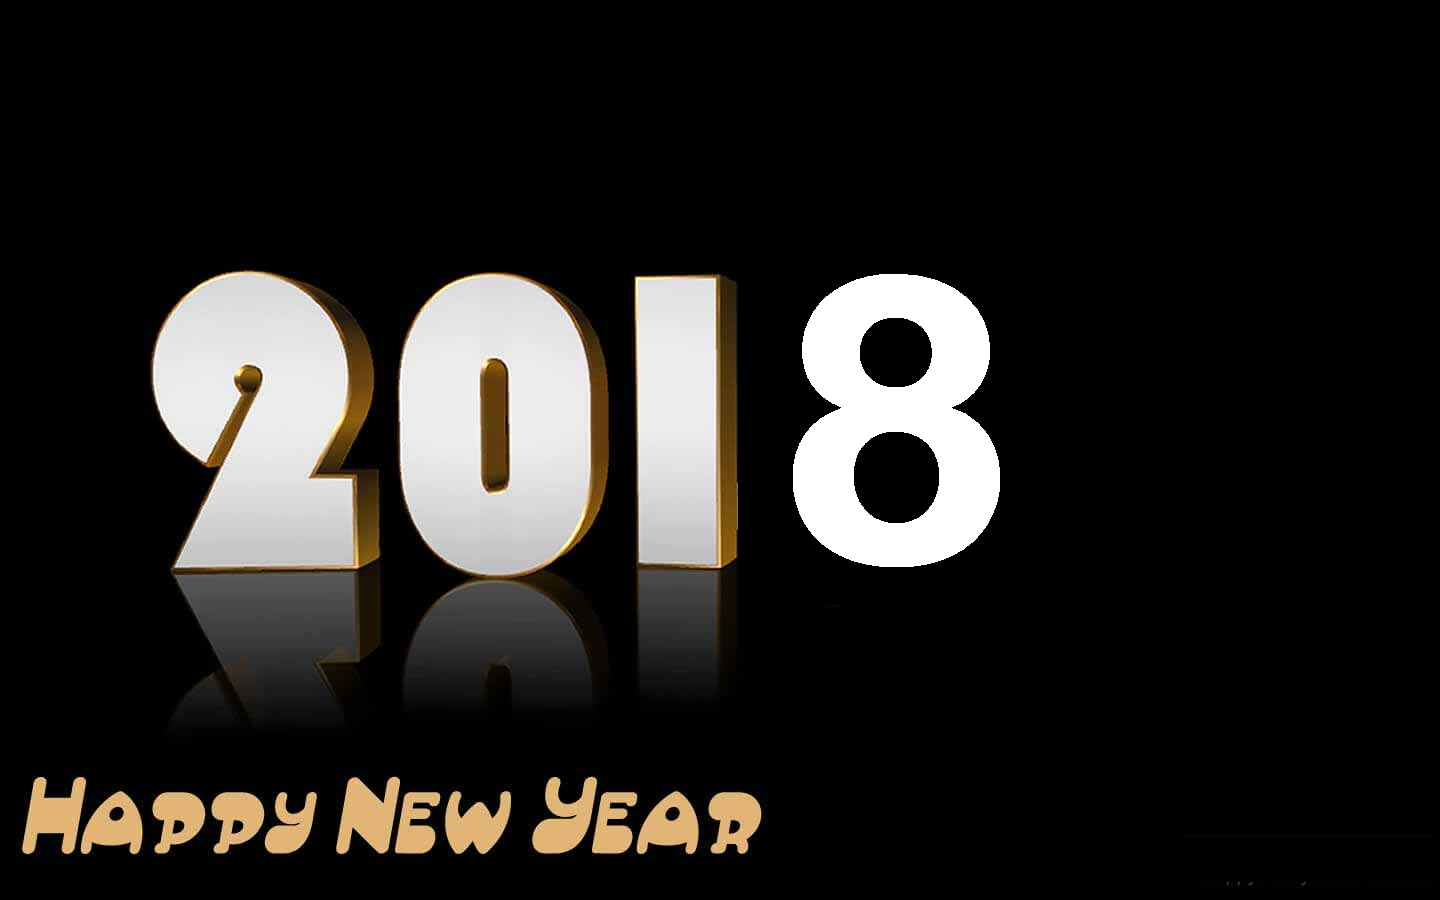 Happy-New-Year-Very-Cute-Images-2018-and-Wallpaper-and-Happy-New-Cute